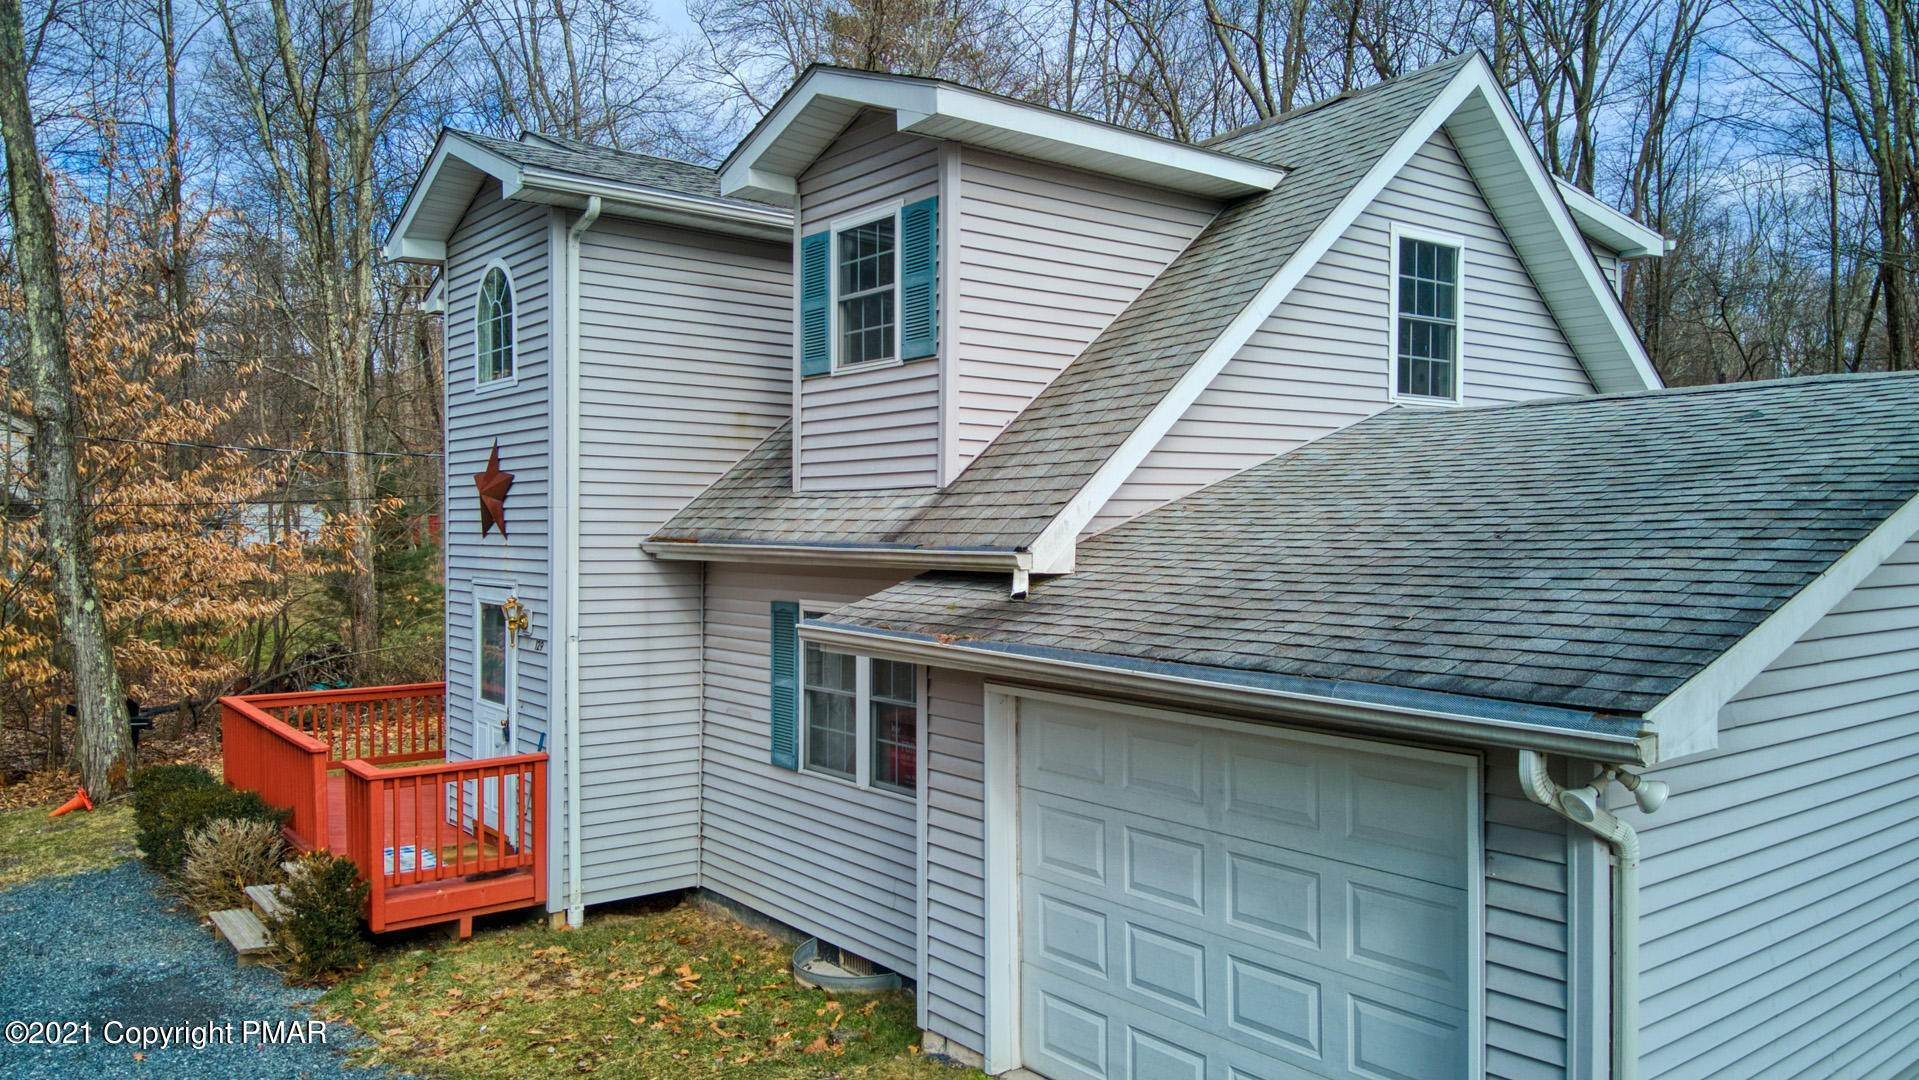 4. Single Family Homes for Sale at 129 Michelle Ln Bartonsville, Pennsylvania 18321 United States